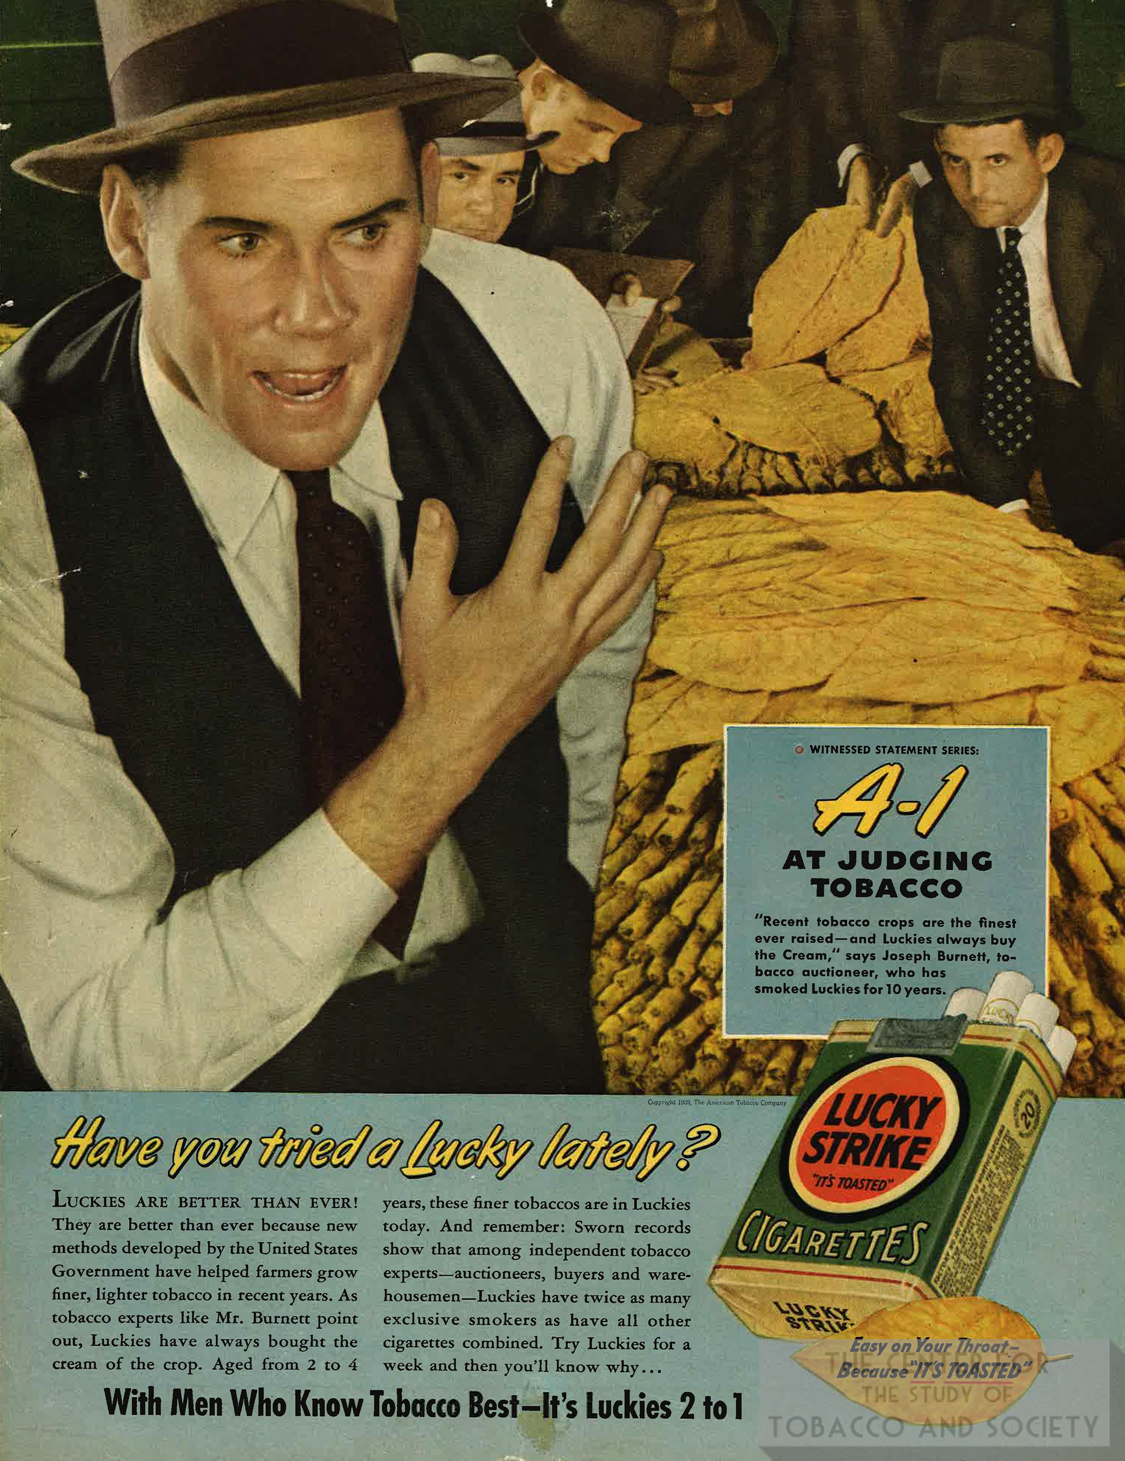 1939 Lucky Strike Ad featuring tobacco auctioneer Have you tried a lucky lately